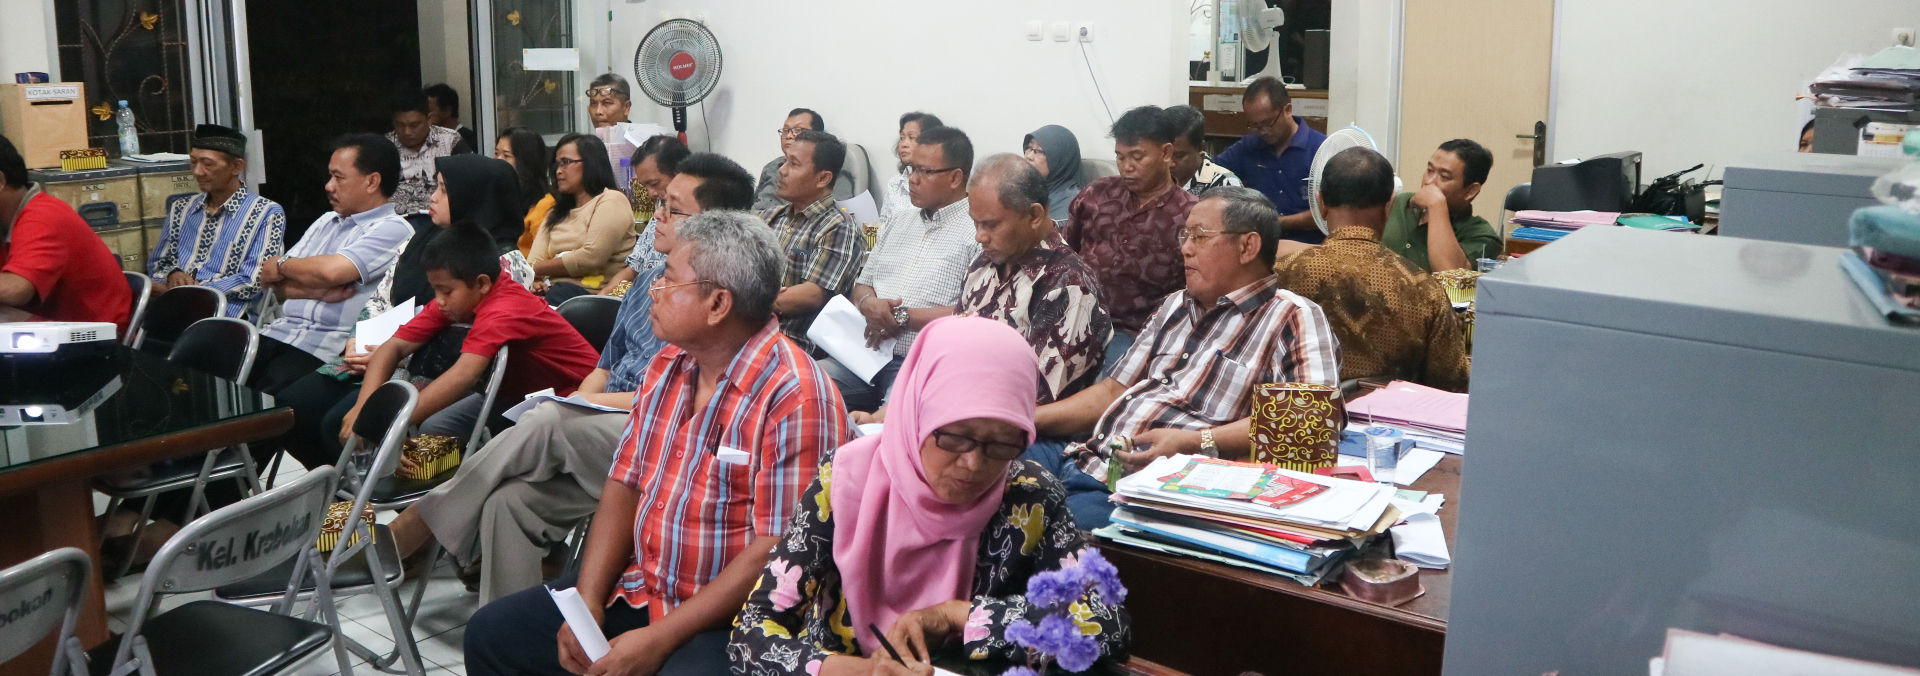 The Formation Of The Disaster Preparedness Groups In 8 Sub-Districts West Flood Canal Area Semarang